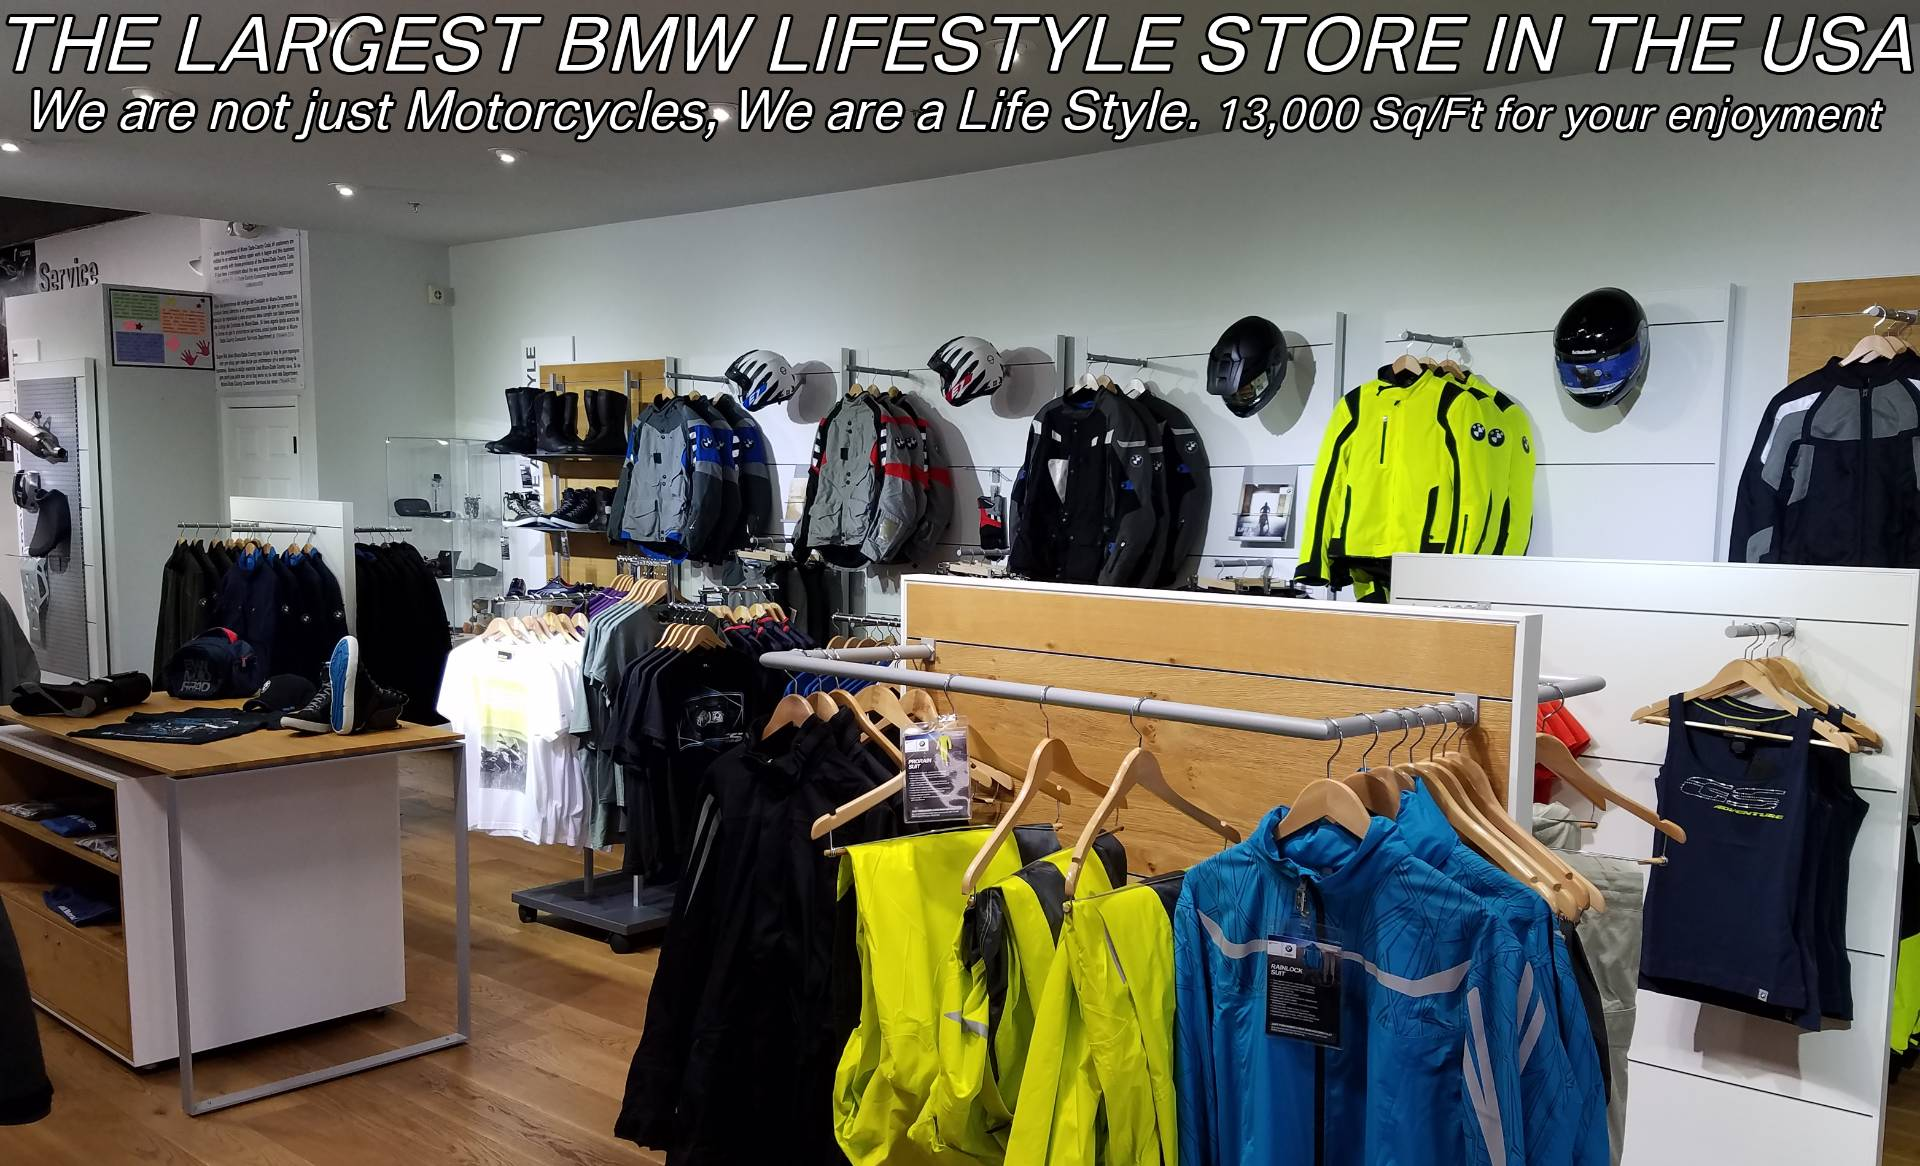 New 2019 BMW F 850 GSA for sale, BMW F 850GSA for sale, BMW Motorcycle F850GSA, new BMW 850 Adventure, Adventure. BMW Motorcycles of Miami, Motorcycles of Miami, Motorcycles Miami, New Motorcycles, Used Motorcycles, pre-owned. #BMWMotorcyclesOfMiami #MotorcyclesOfMiami #MotorcyclesMiami - Photo 62